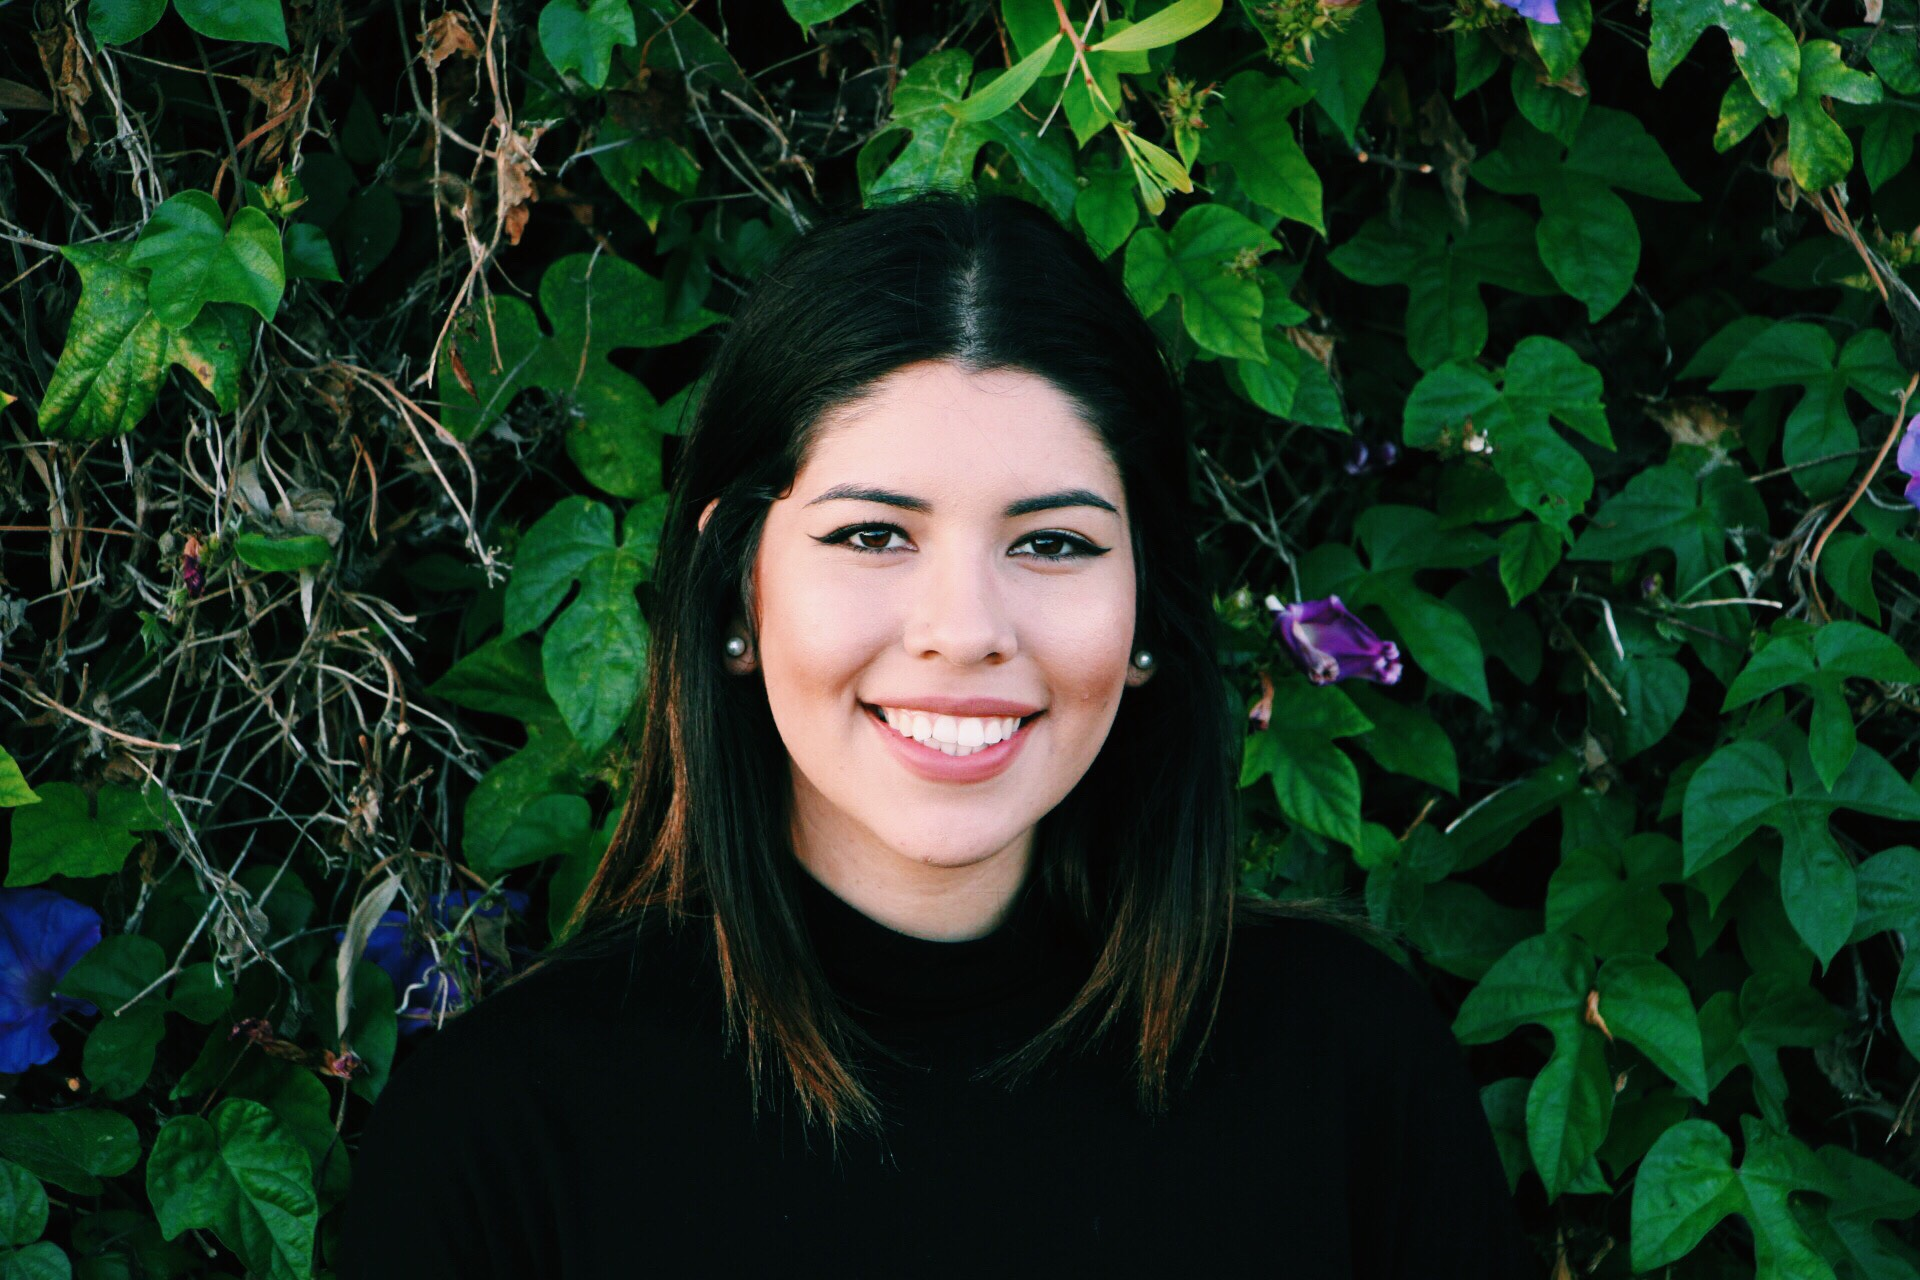 Andrea Gonzalez, Social Media Editor - Andrea Gonzalez is an MFA candidate at Mount St. Mary's University. Her poetry and short stories have appeared in the Synecdoche Literary Journal.